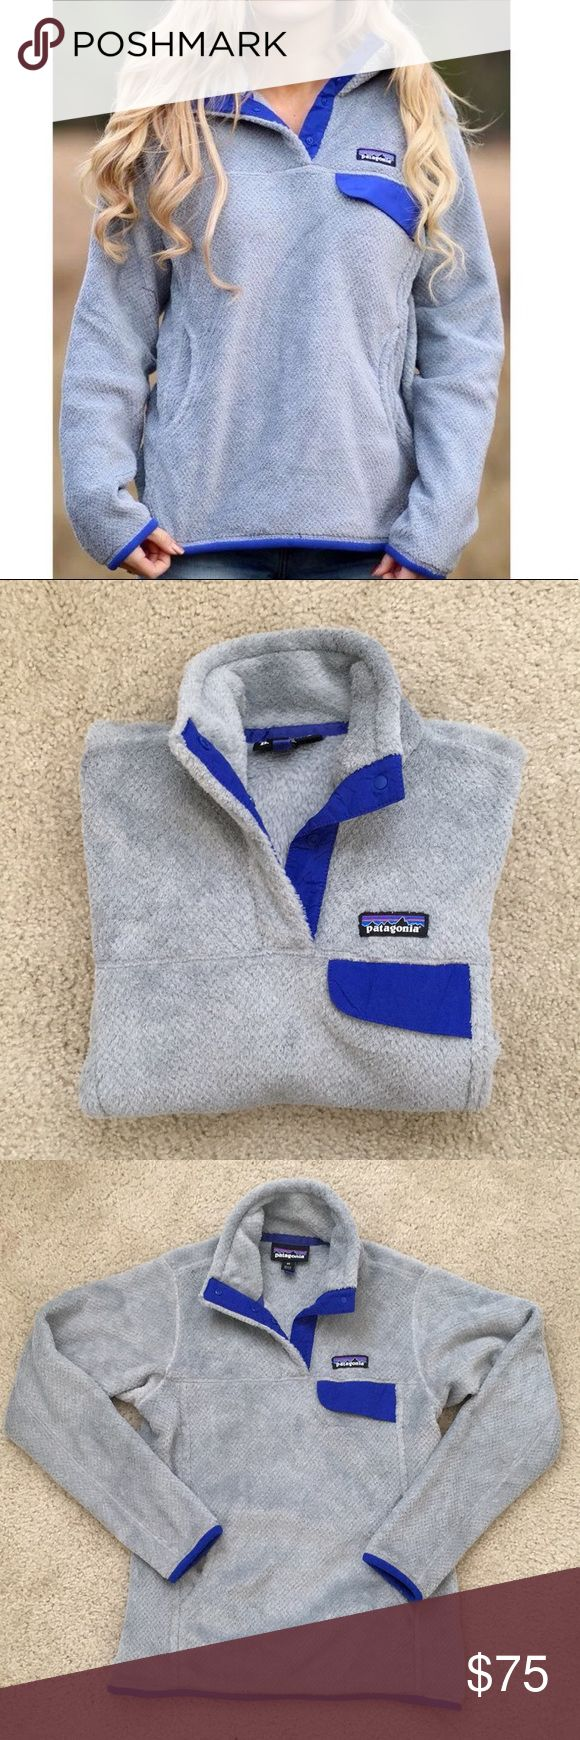 Patagonia Retool Snap Pullover Grey cozy pullover with purple accents  Snap up neck Foldable collar 2 front pockets  Perfect for chilly spring days   Worn only a few times, like new condition! Patagonia Tops Sweatshirts & Hoodies